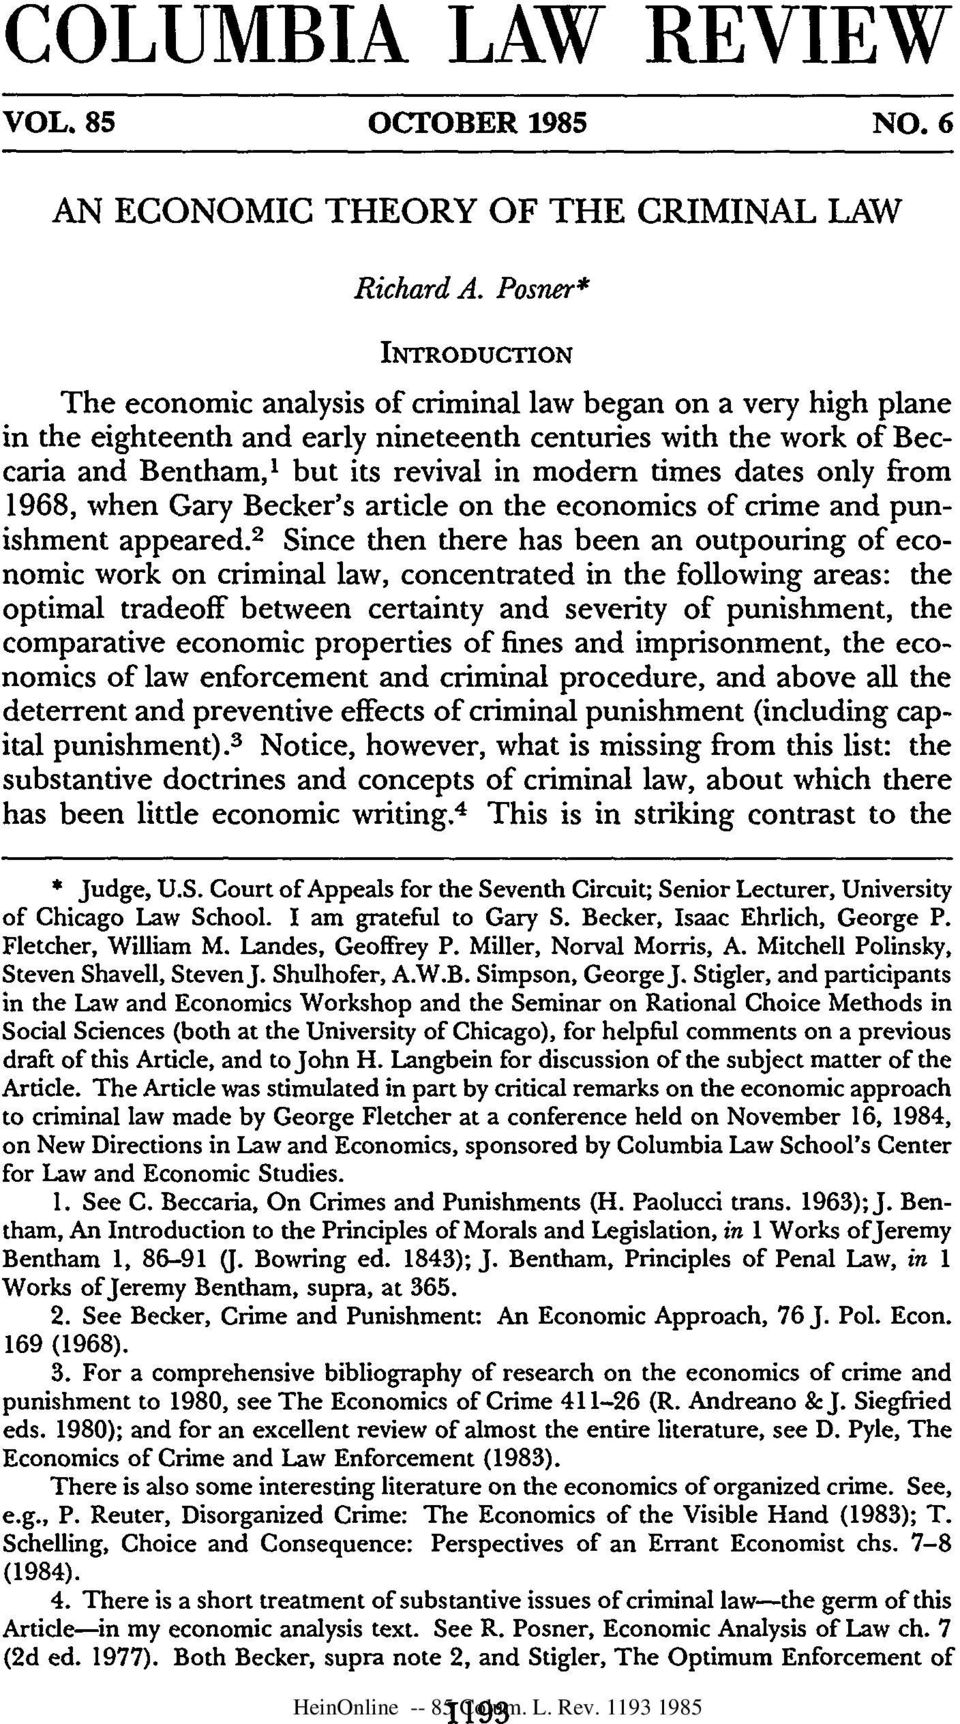 times dates only from 1968, when Gary Becker's article on the economics of crime and punishment appeared.